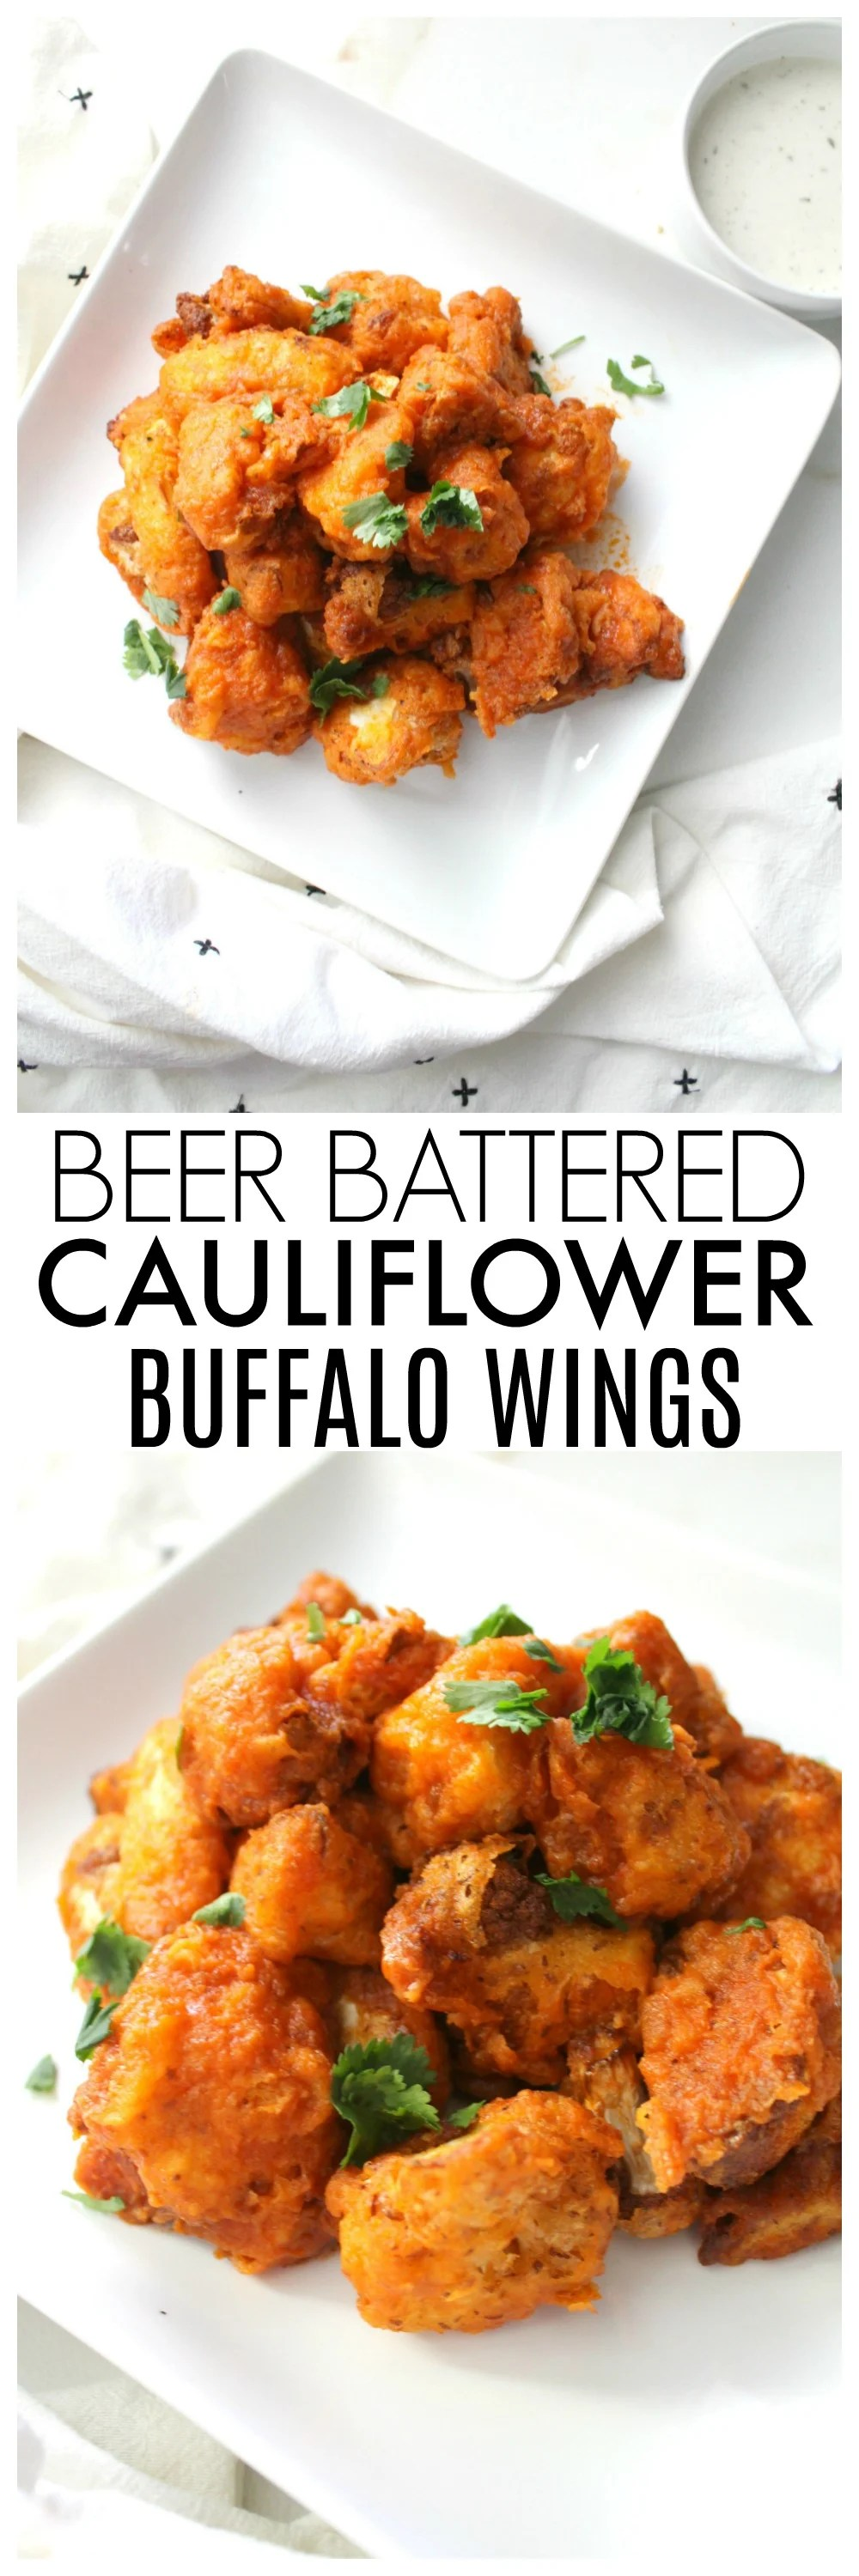 TheseBeer Battered Cauliflower Buffalo Wings are the perfect balance of spice and crunch. A vegan game day recipe that everyone will love!| ThisSavoryVegan.com #vegan #gameday